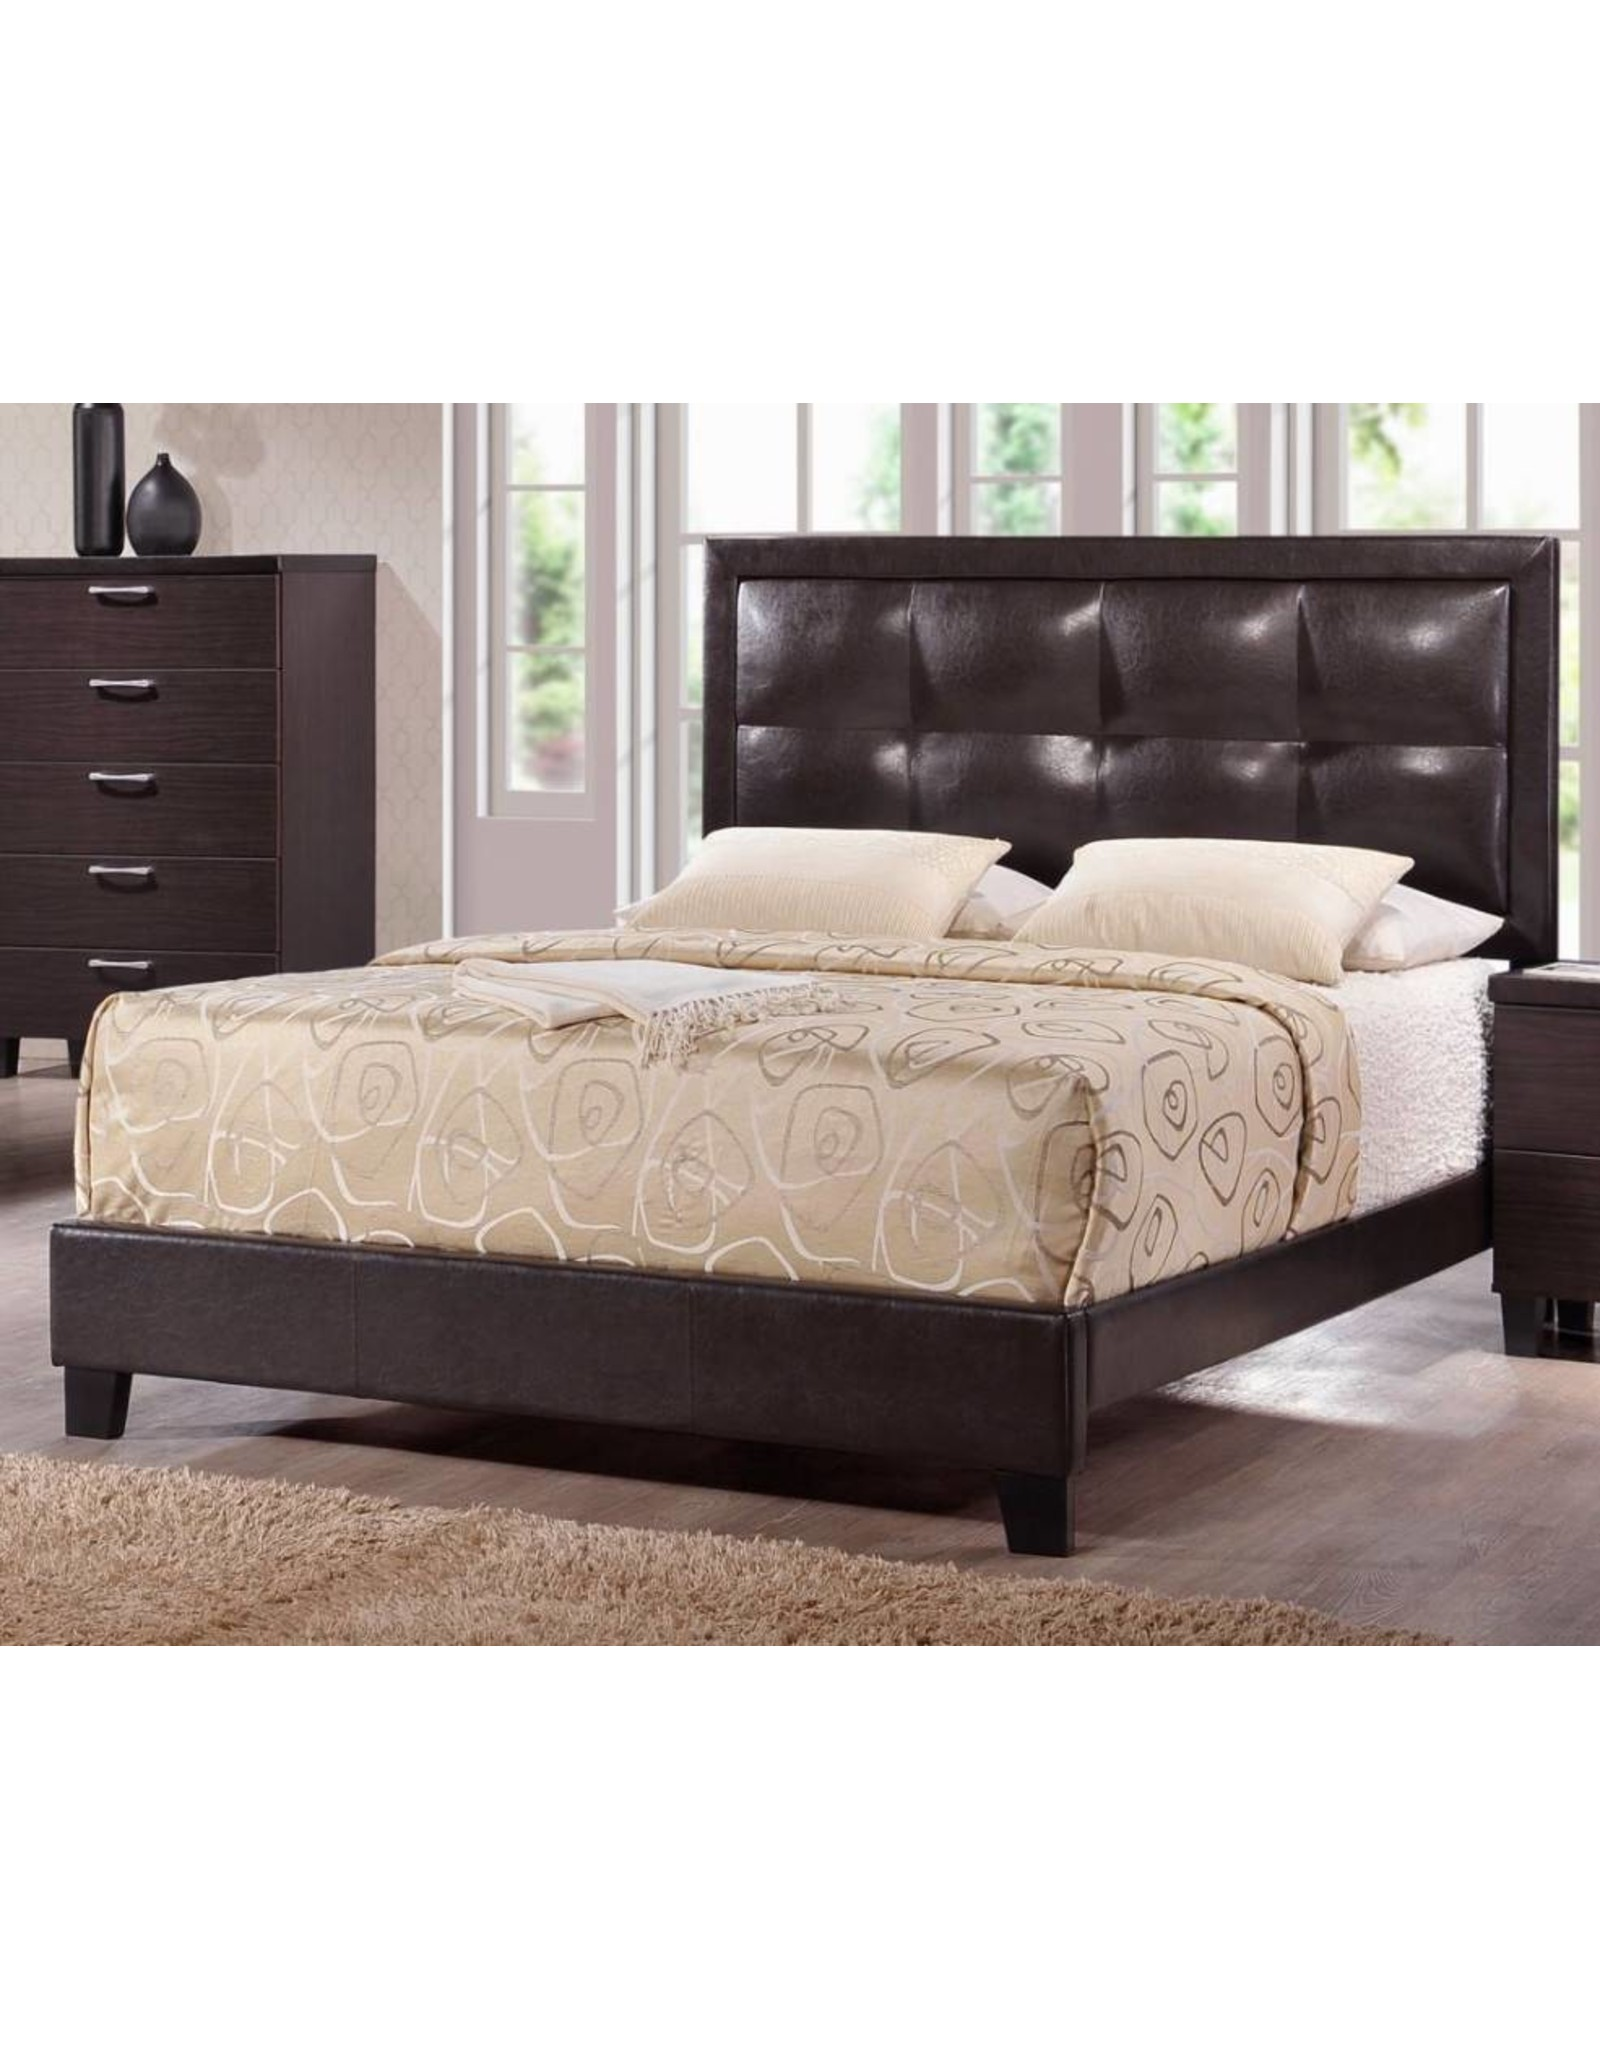 BR1238 King Bed